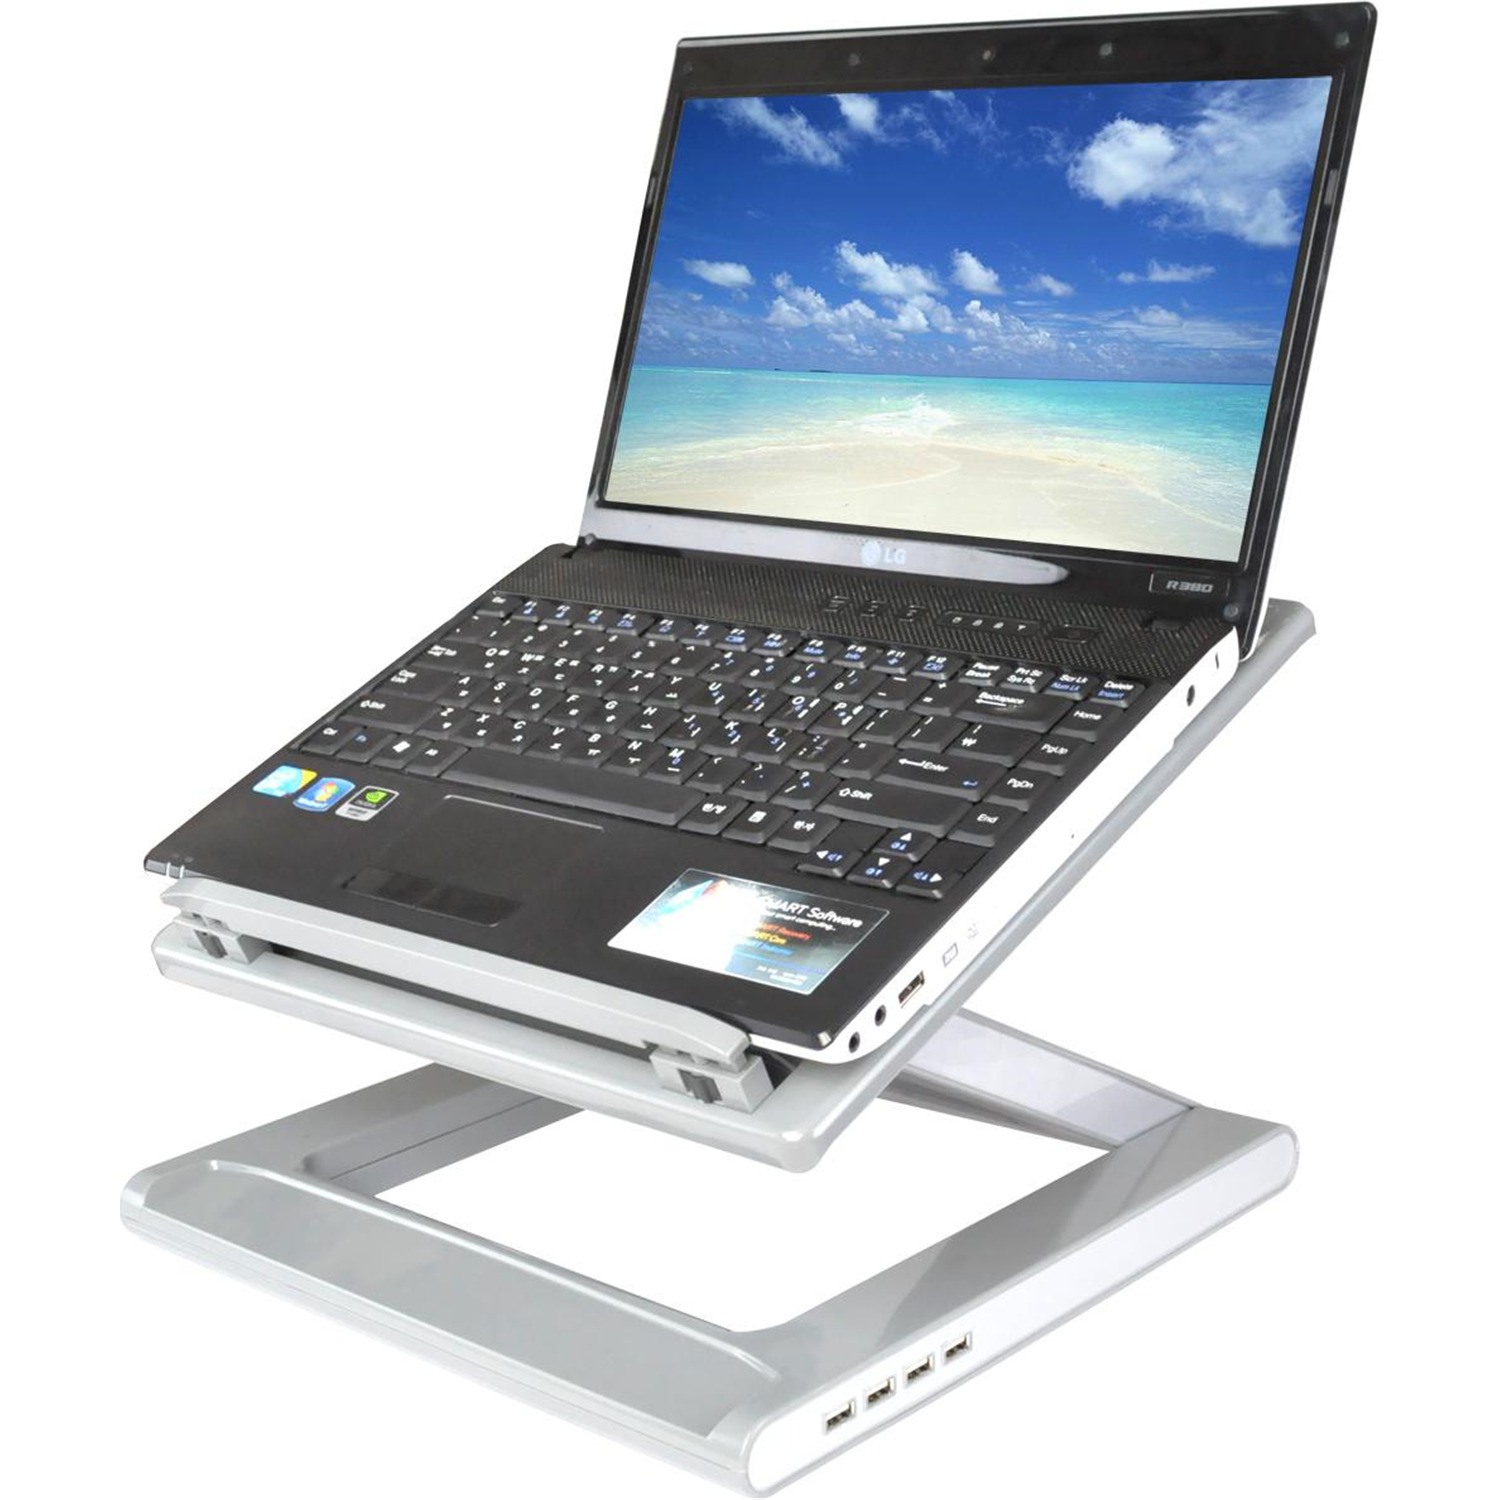 Sharper Image Ergonomic Laptop Cooling Stand By OJ